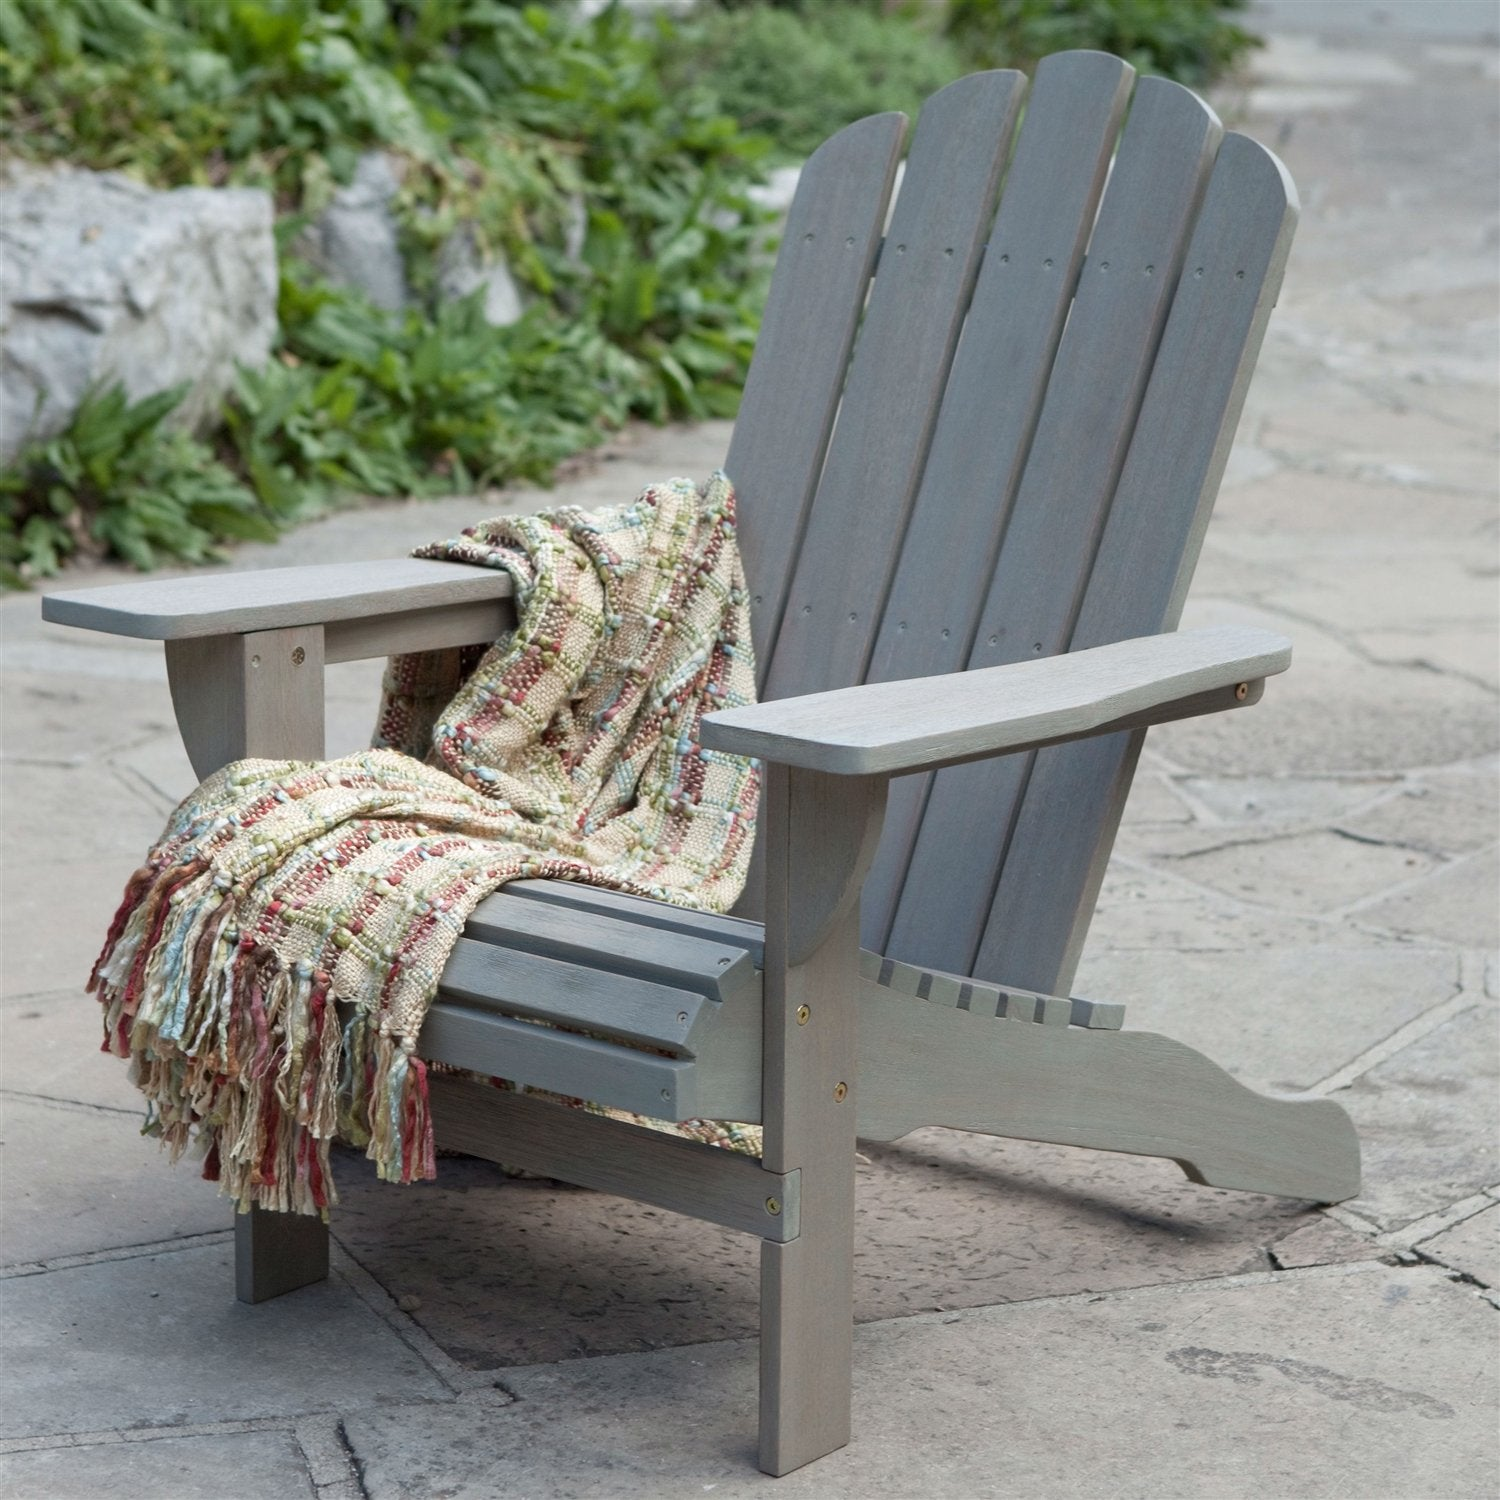 Eco-Friendly Eucalyptus Wood Adirondack Chair in Driftwood Color